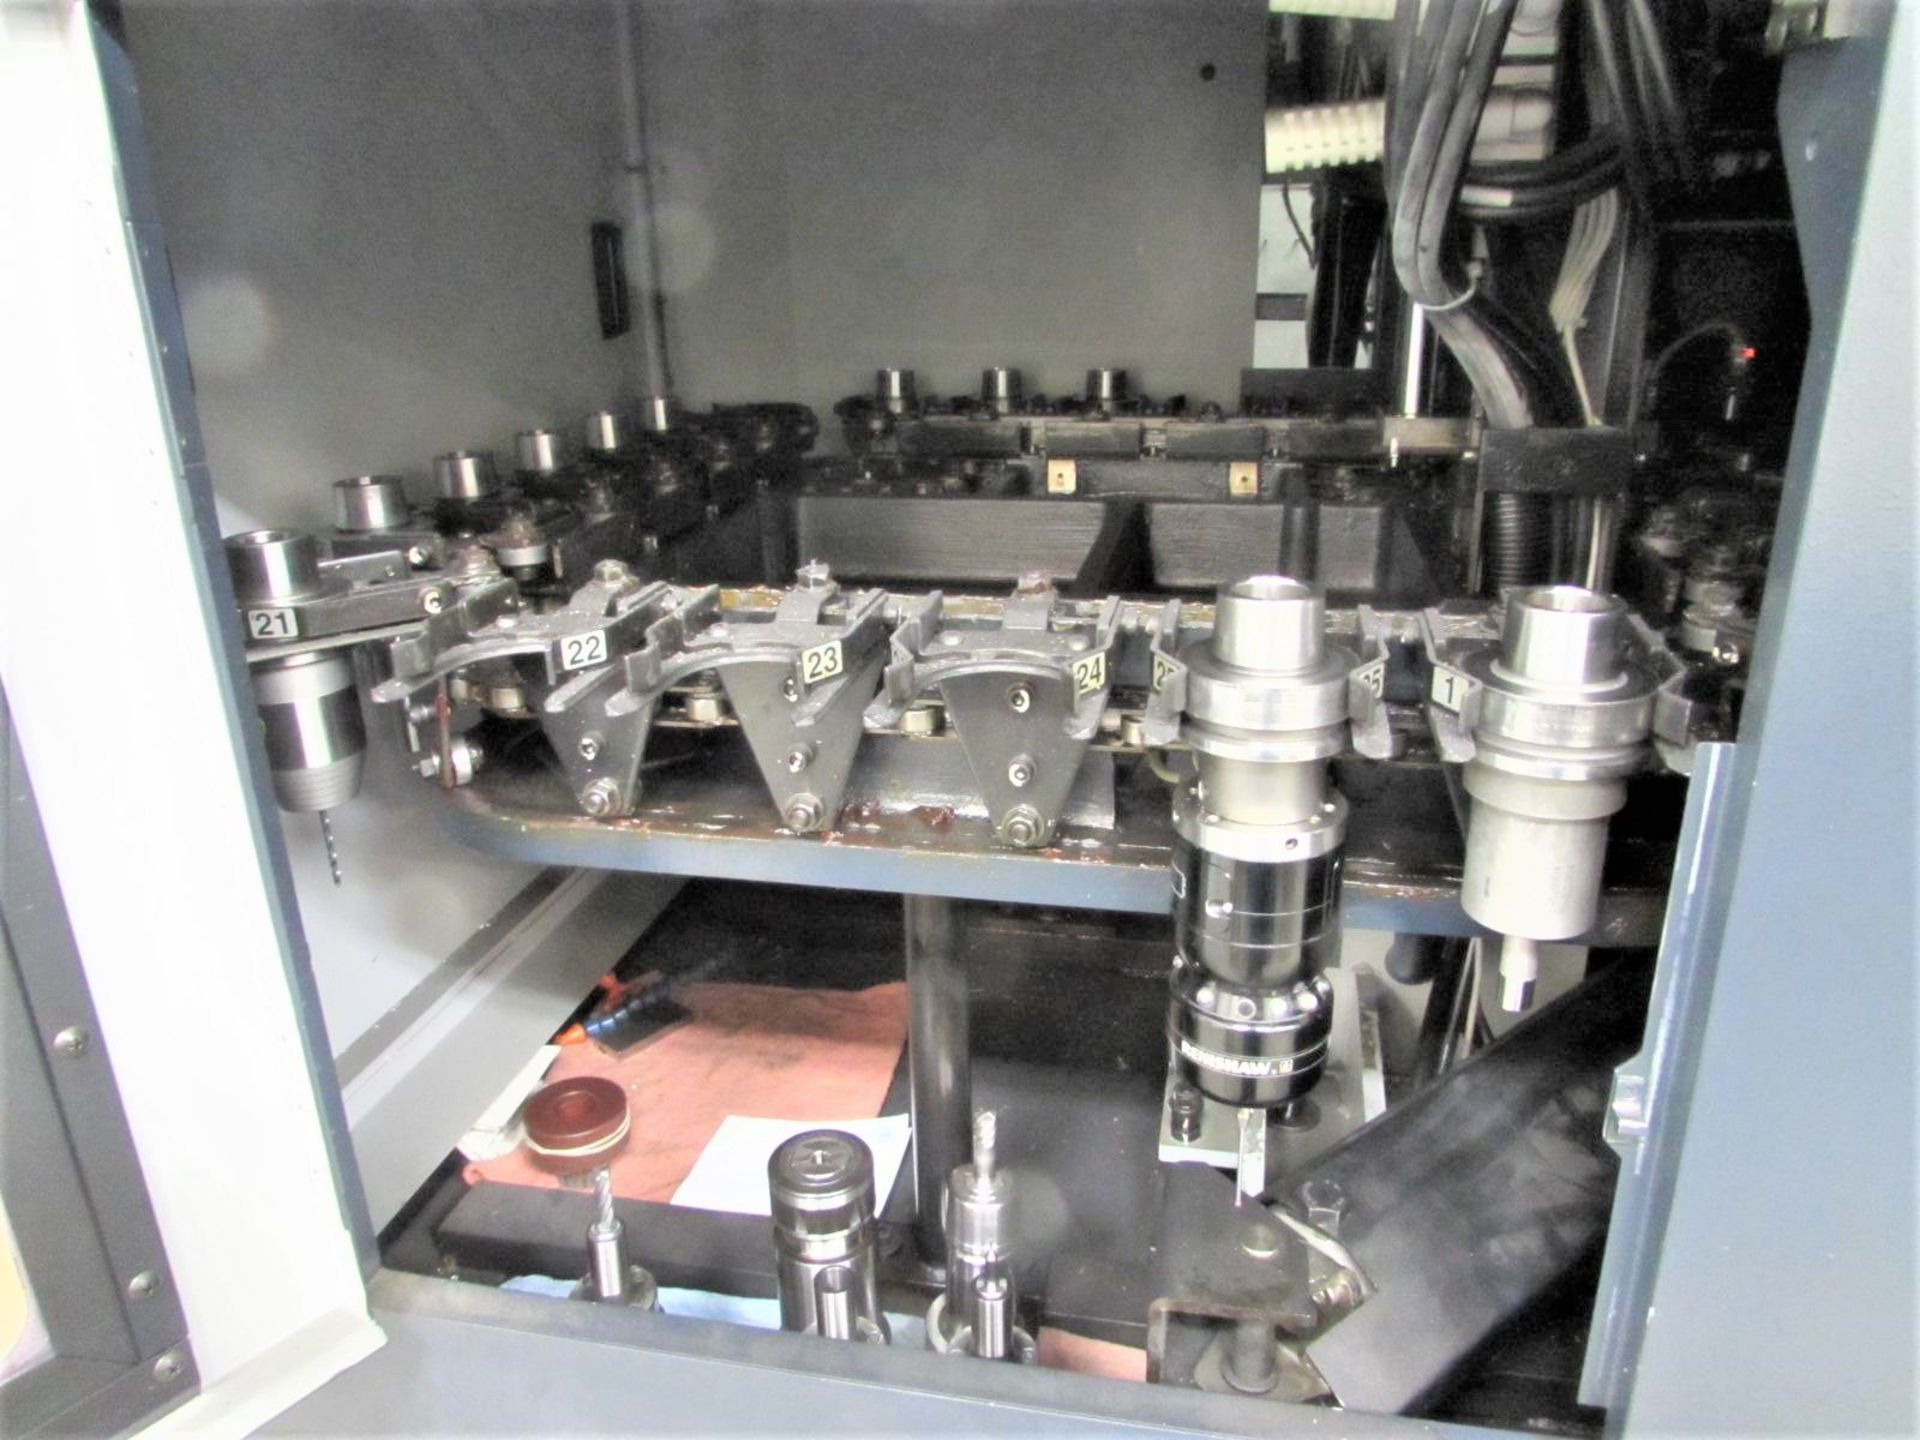 Lot 51 - Makino V33 High Speed CNC Vertical Machining Center, 30k RPM Spindle, S/N 1034, New 2003